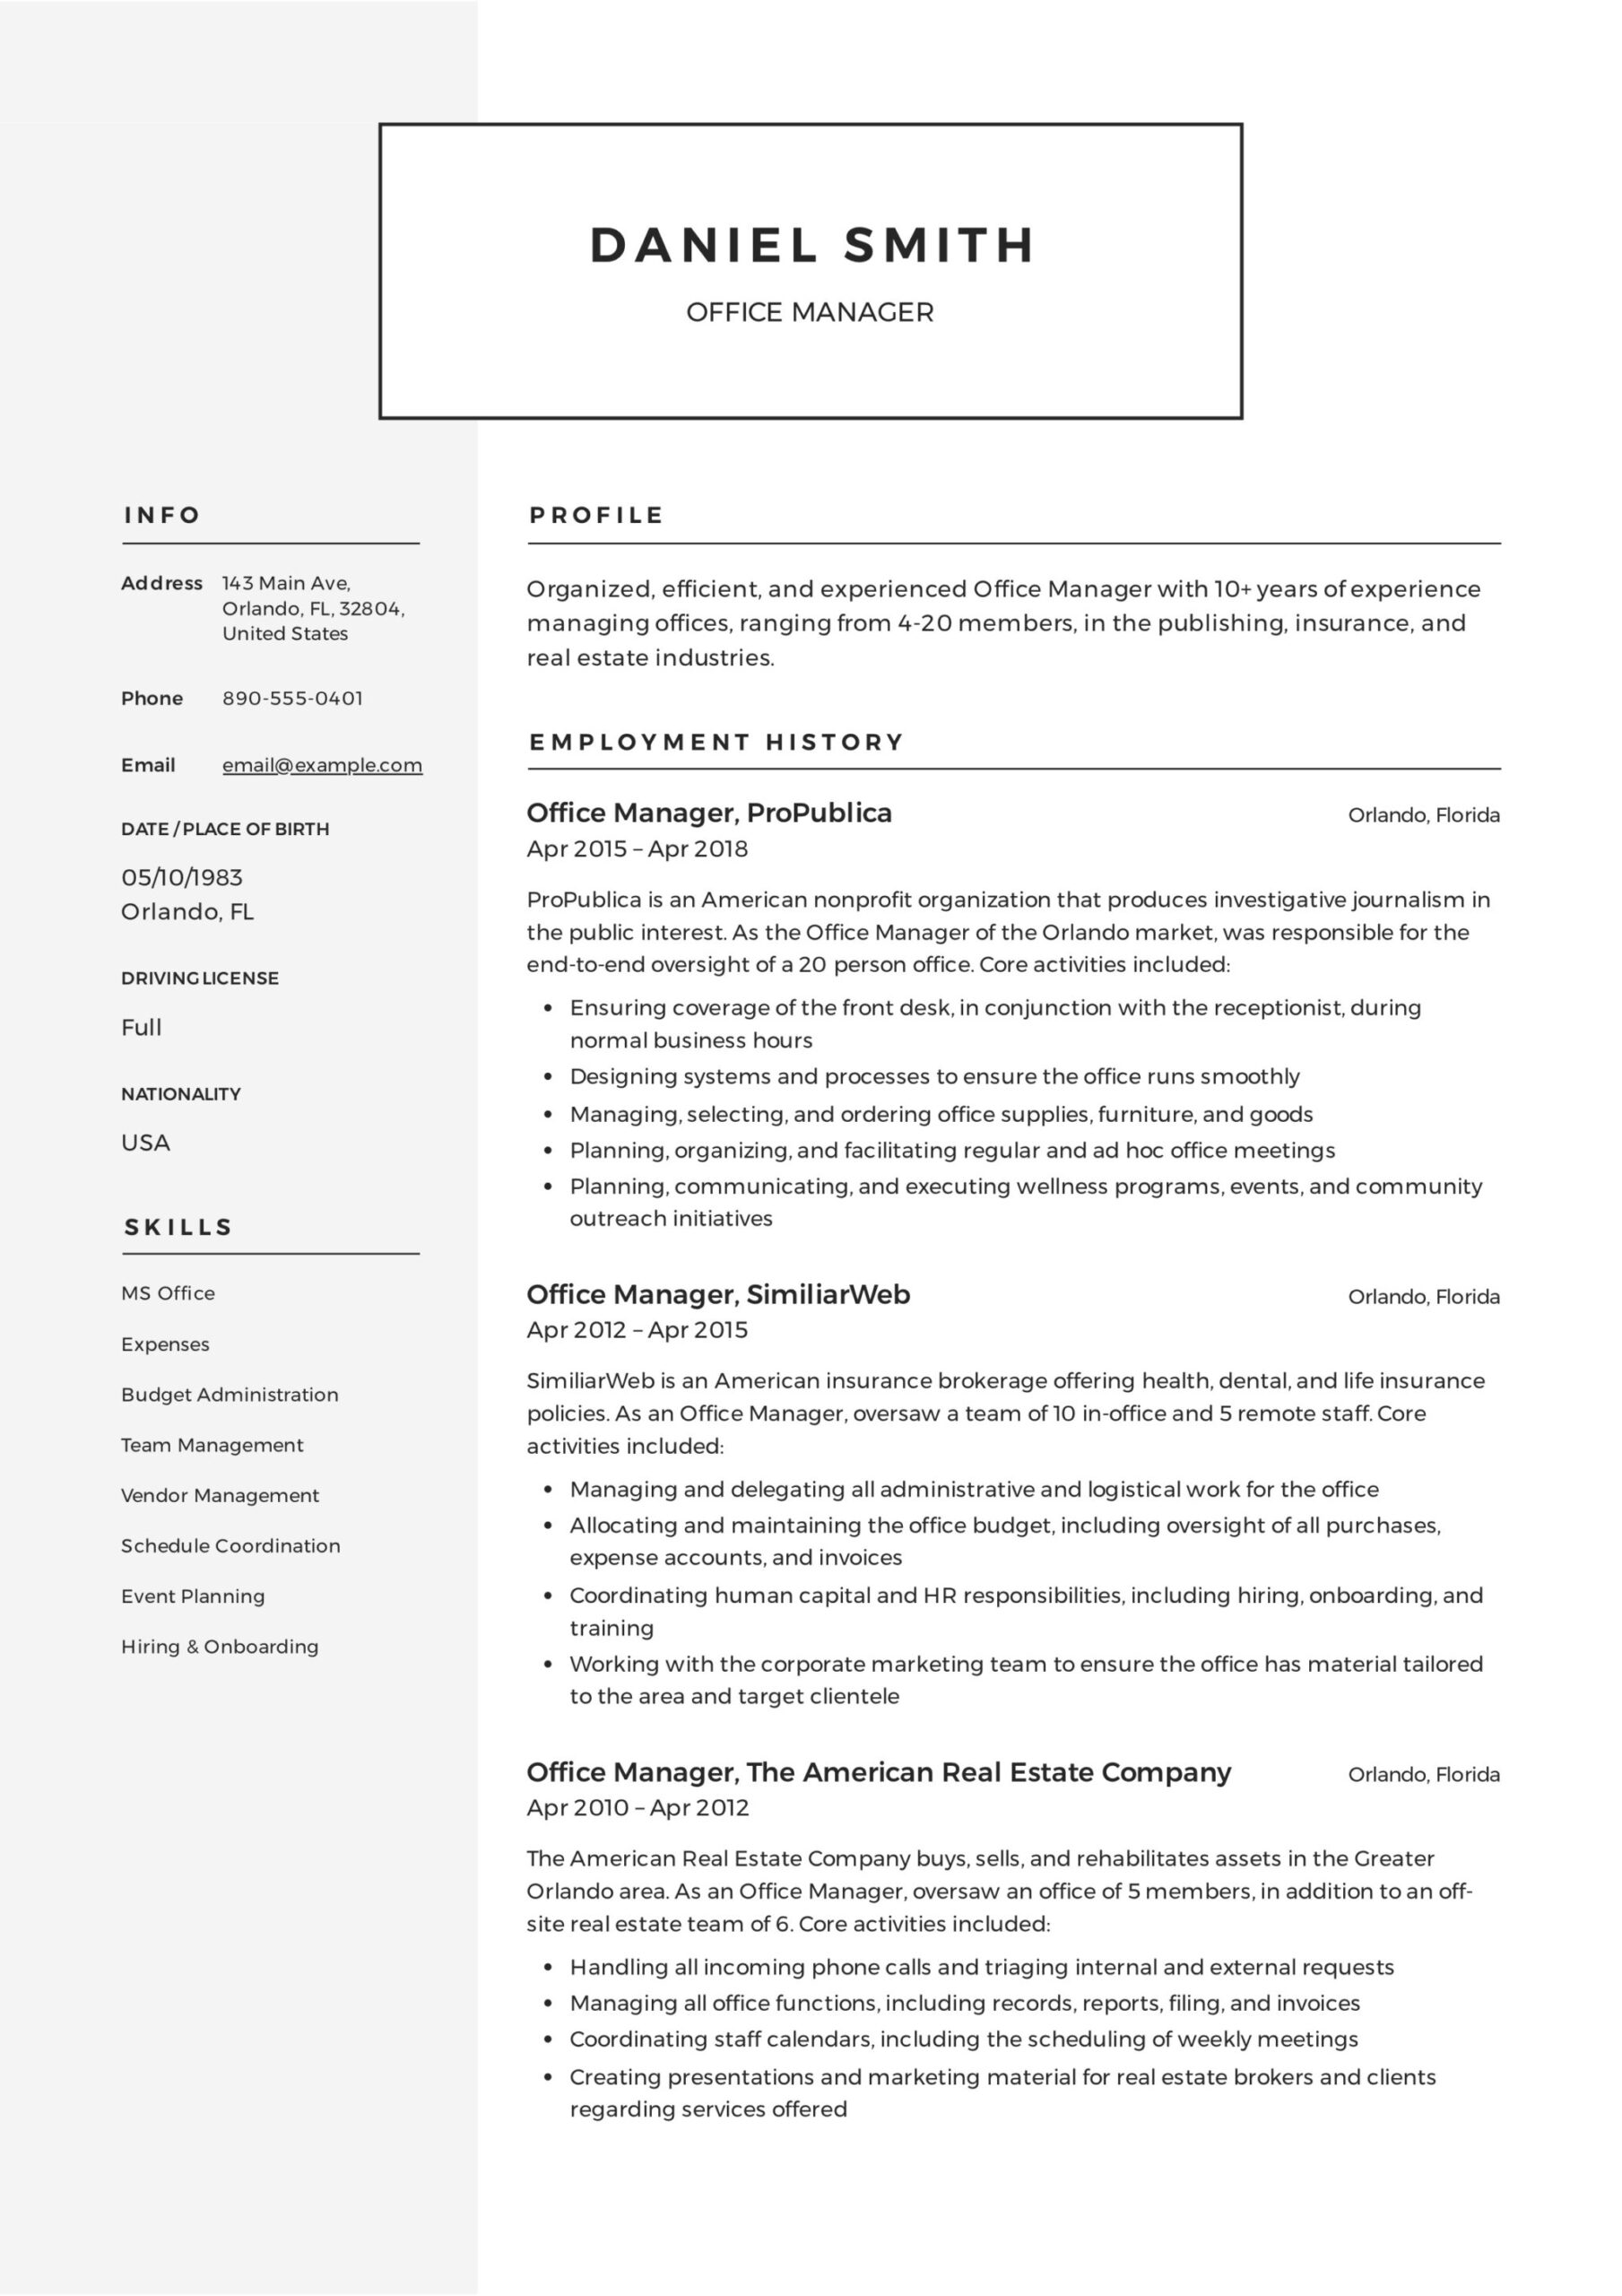 office manager resume guide samples pdf examples sample medical technician entertainer Resume Office Manager Resume Examples 2020